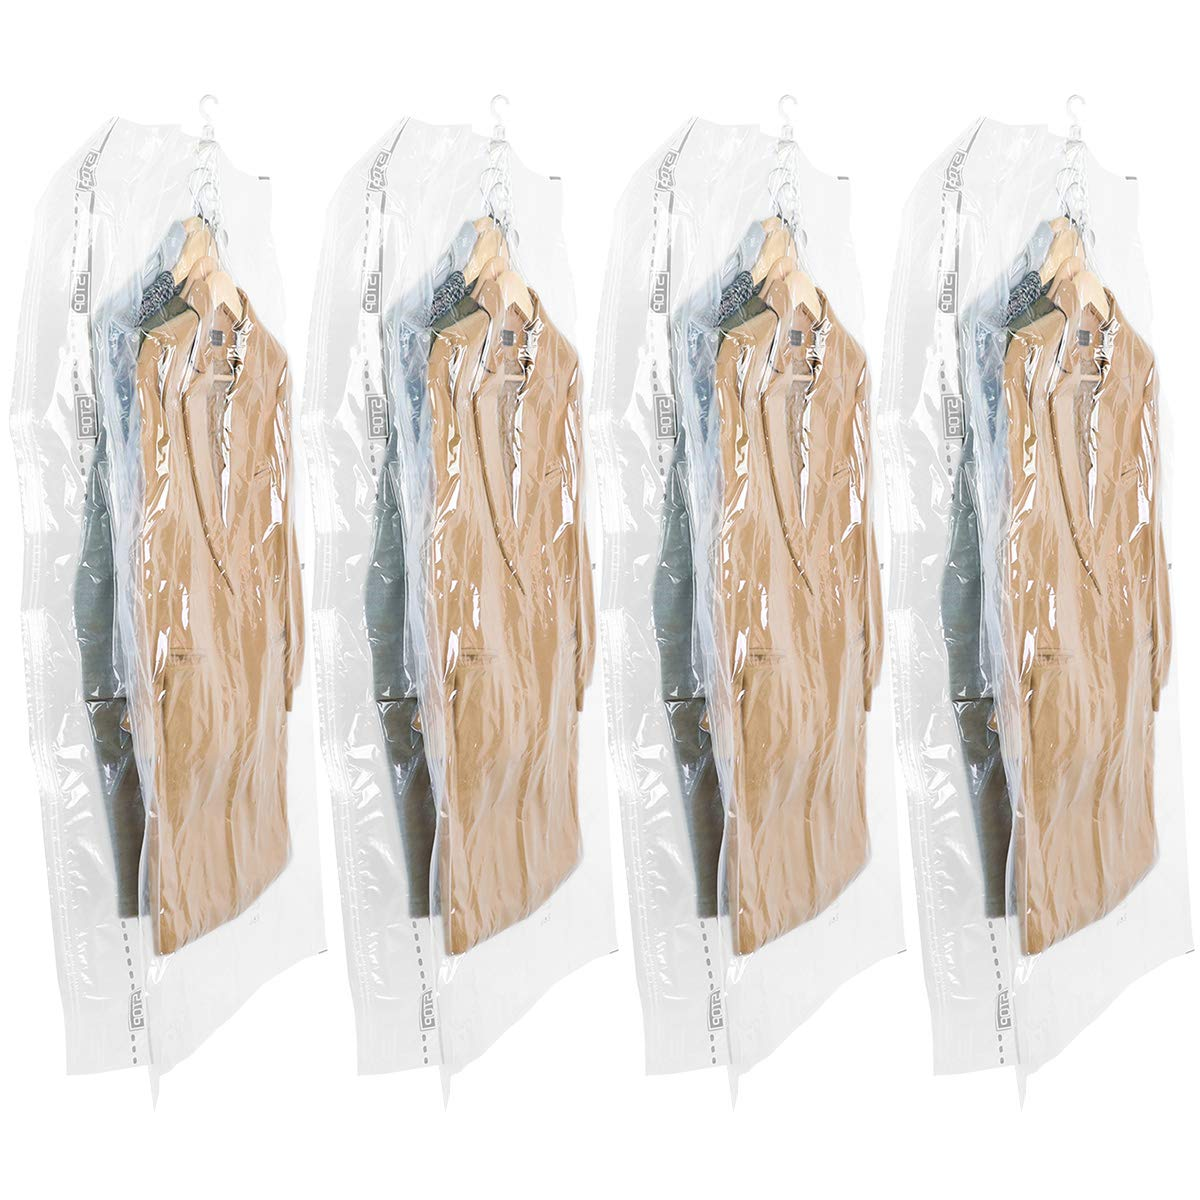 TAILI Hanging Vacuum Wide-Side Space Saver Bags, Set of 4 Long Size (53x27.6x15 inch), Vacuum Seal Storage Bag Clear Bags for Clothes Suits, Dress or Jackets, Closet Organizer by TAILI